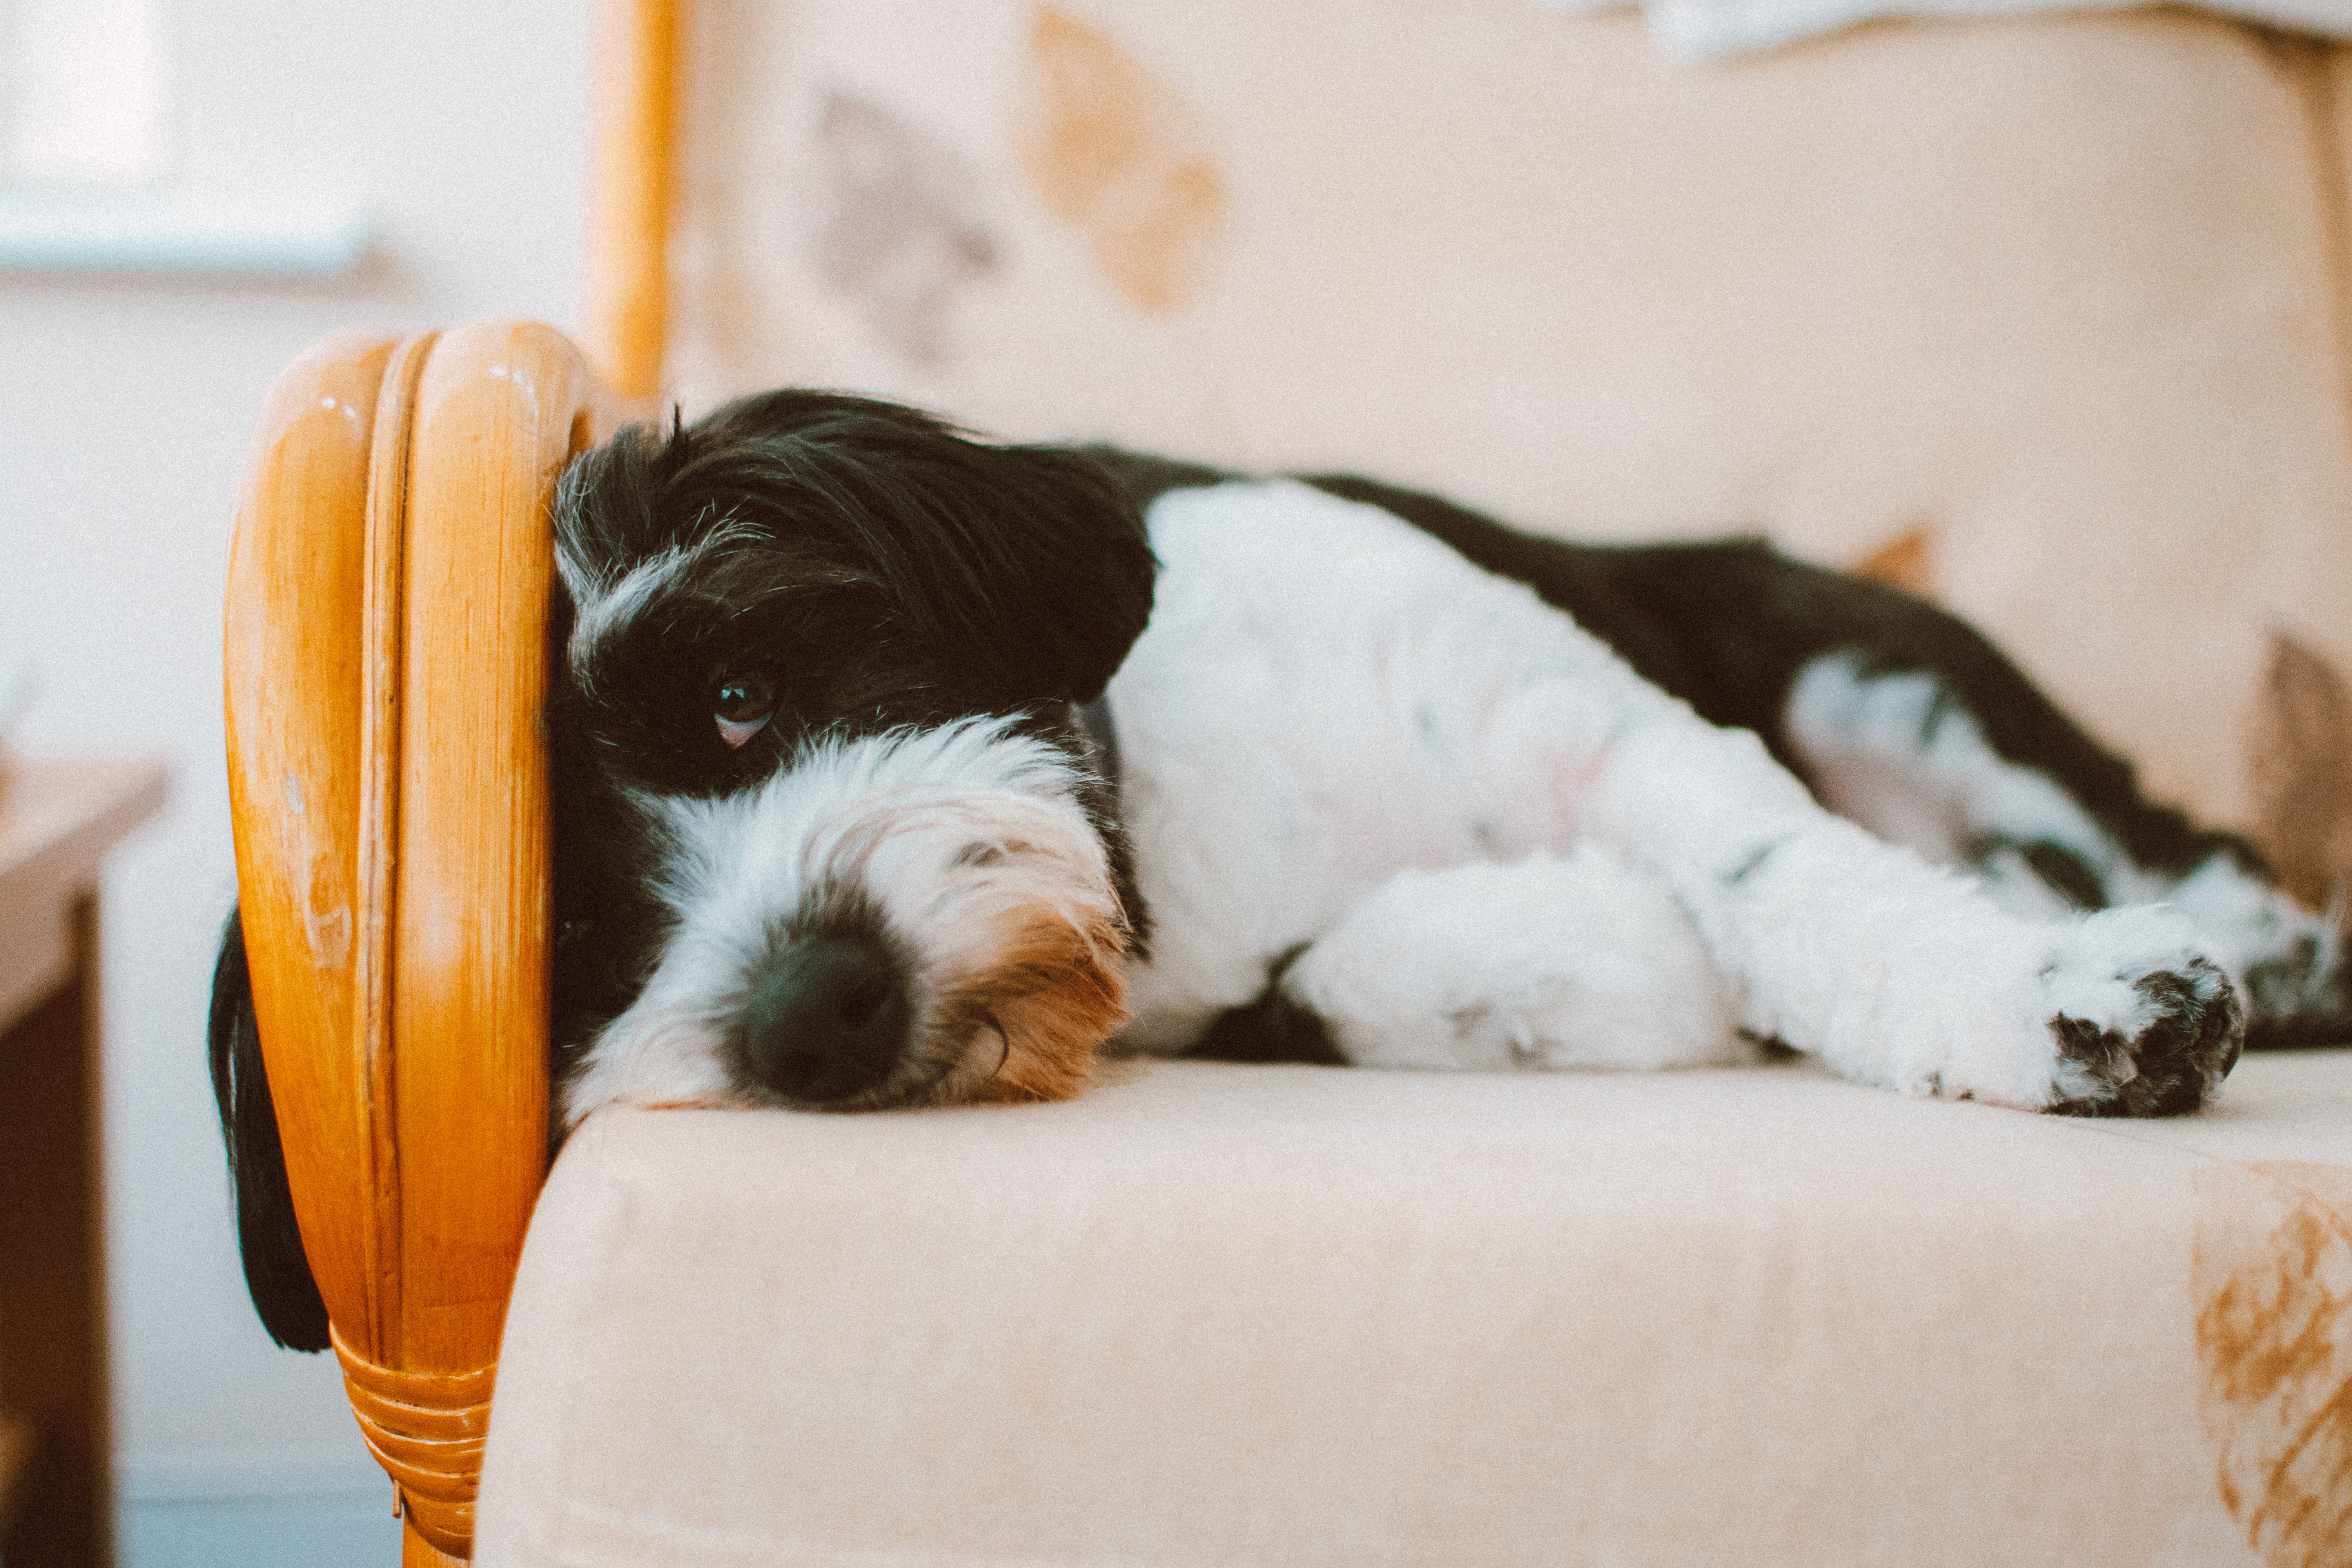 Keeping on top of your pet's hygiene can help prevent the virus. (Credit: Pexels)